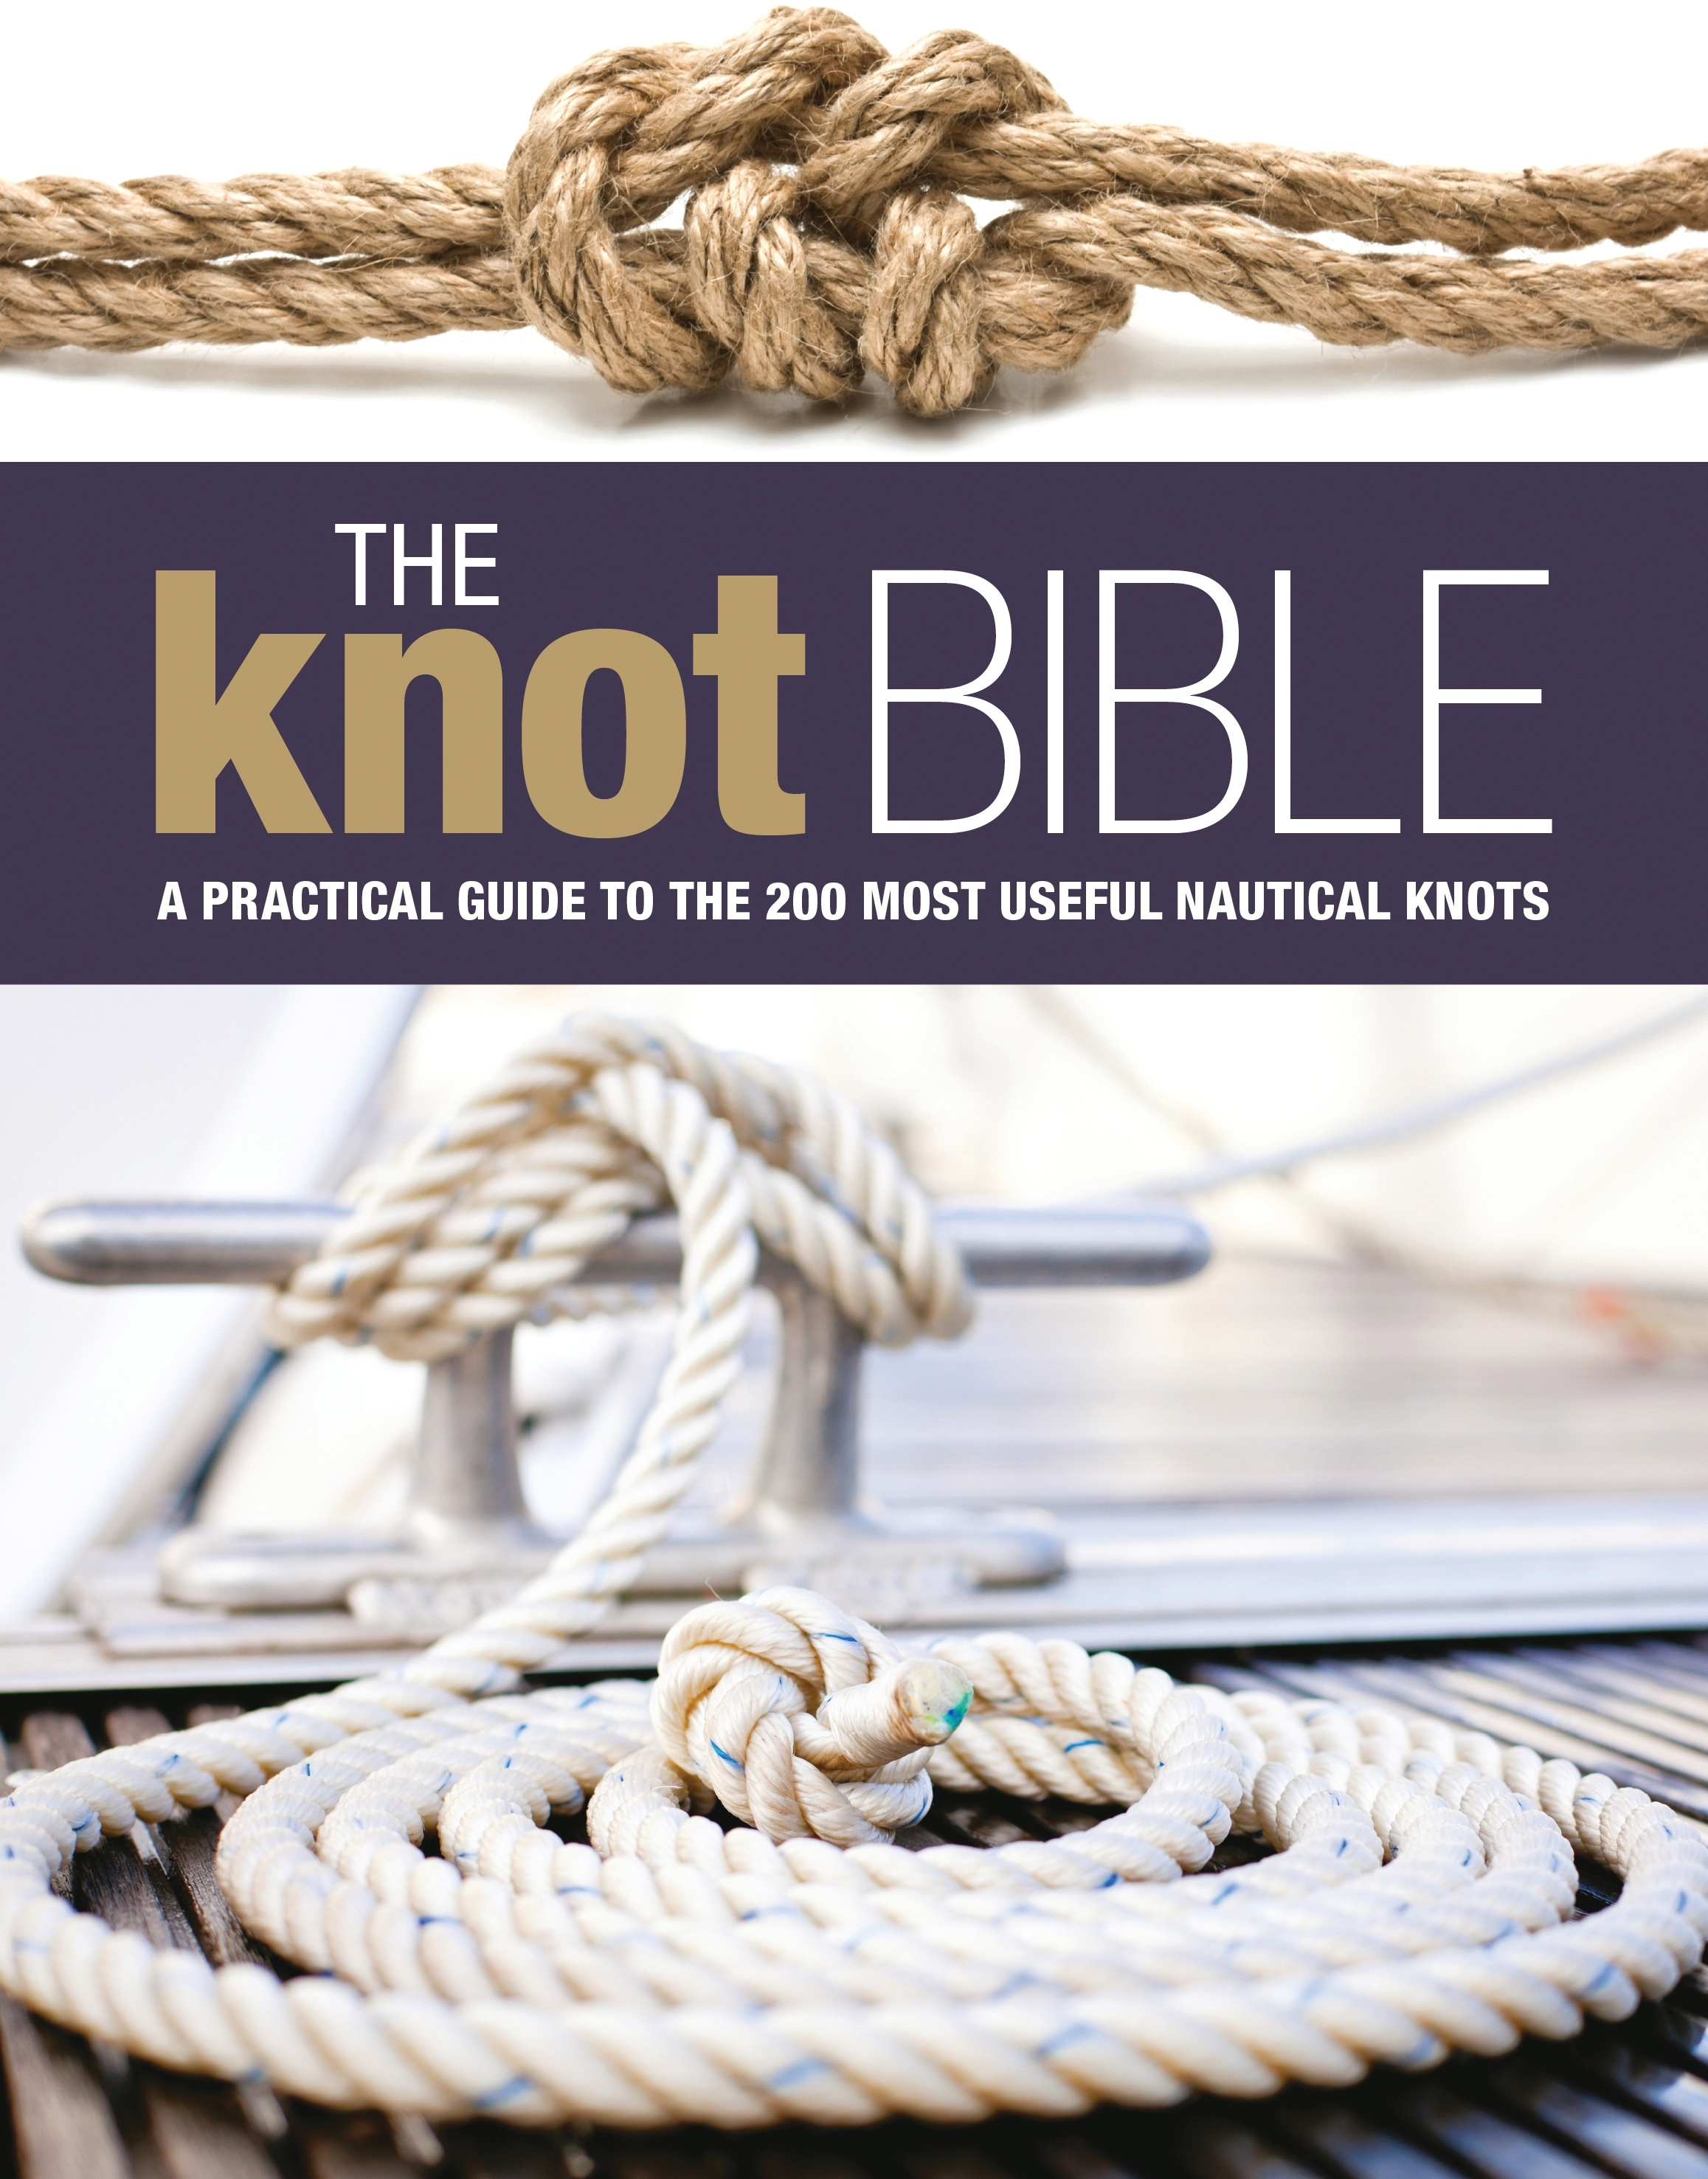 The Knot Bible The Complete Guide to Knots and Their Uses